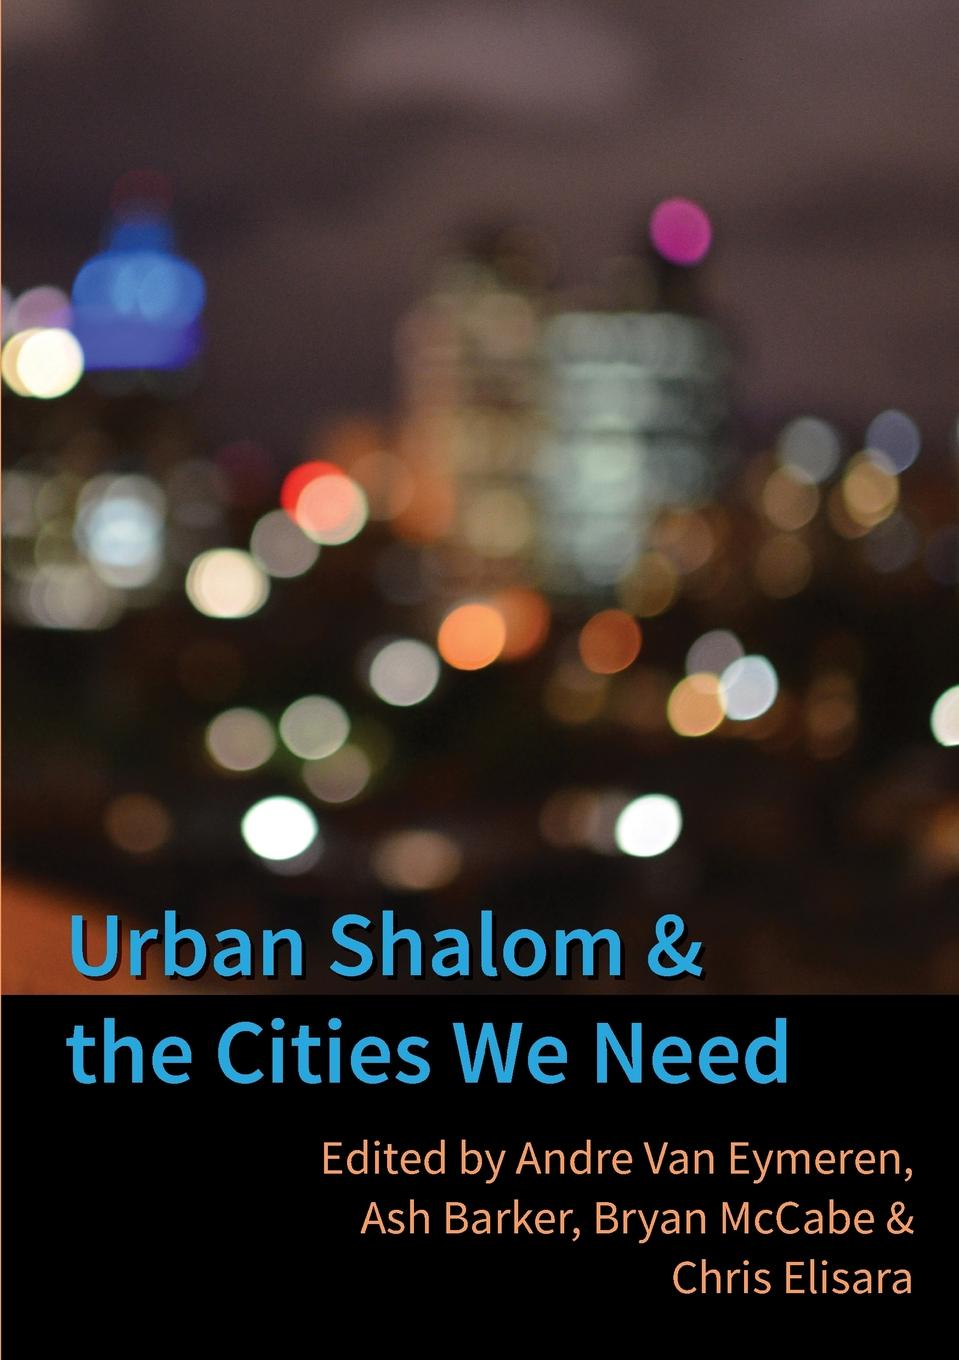 Urban Shalom and the Cities We Need henry o collected tales iii the sleuths witches loaves pride of the cities